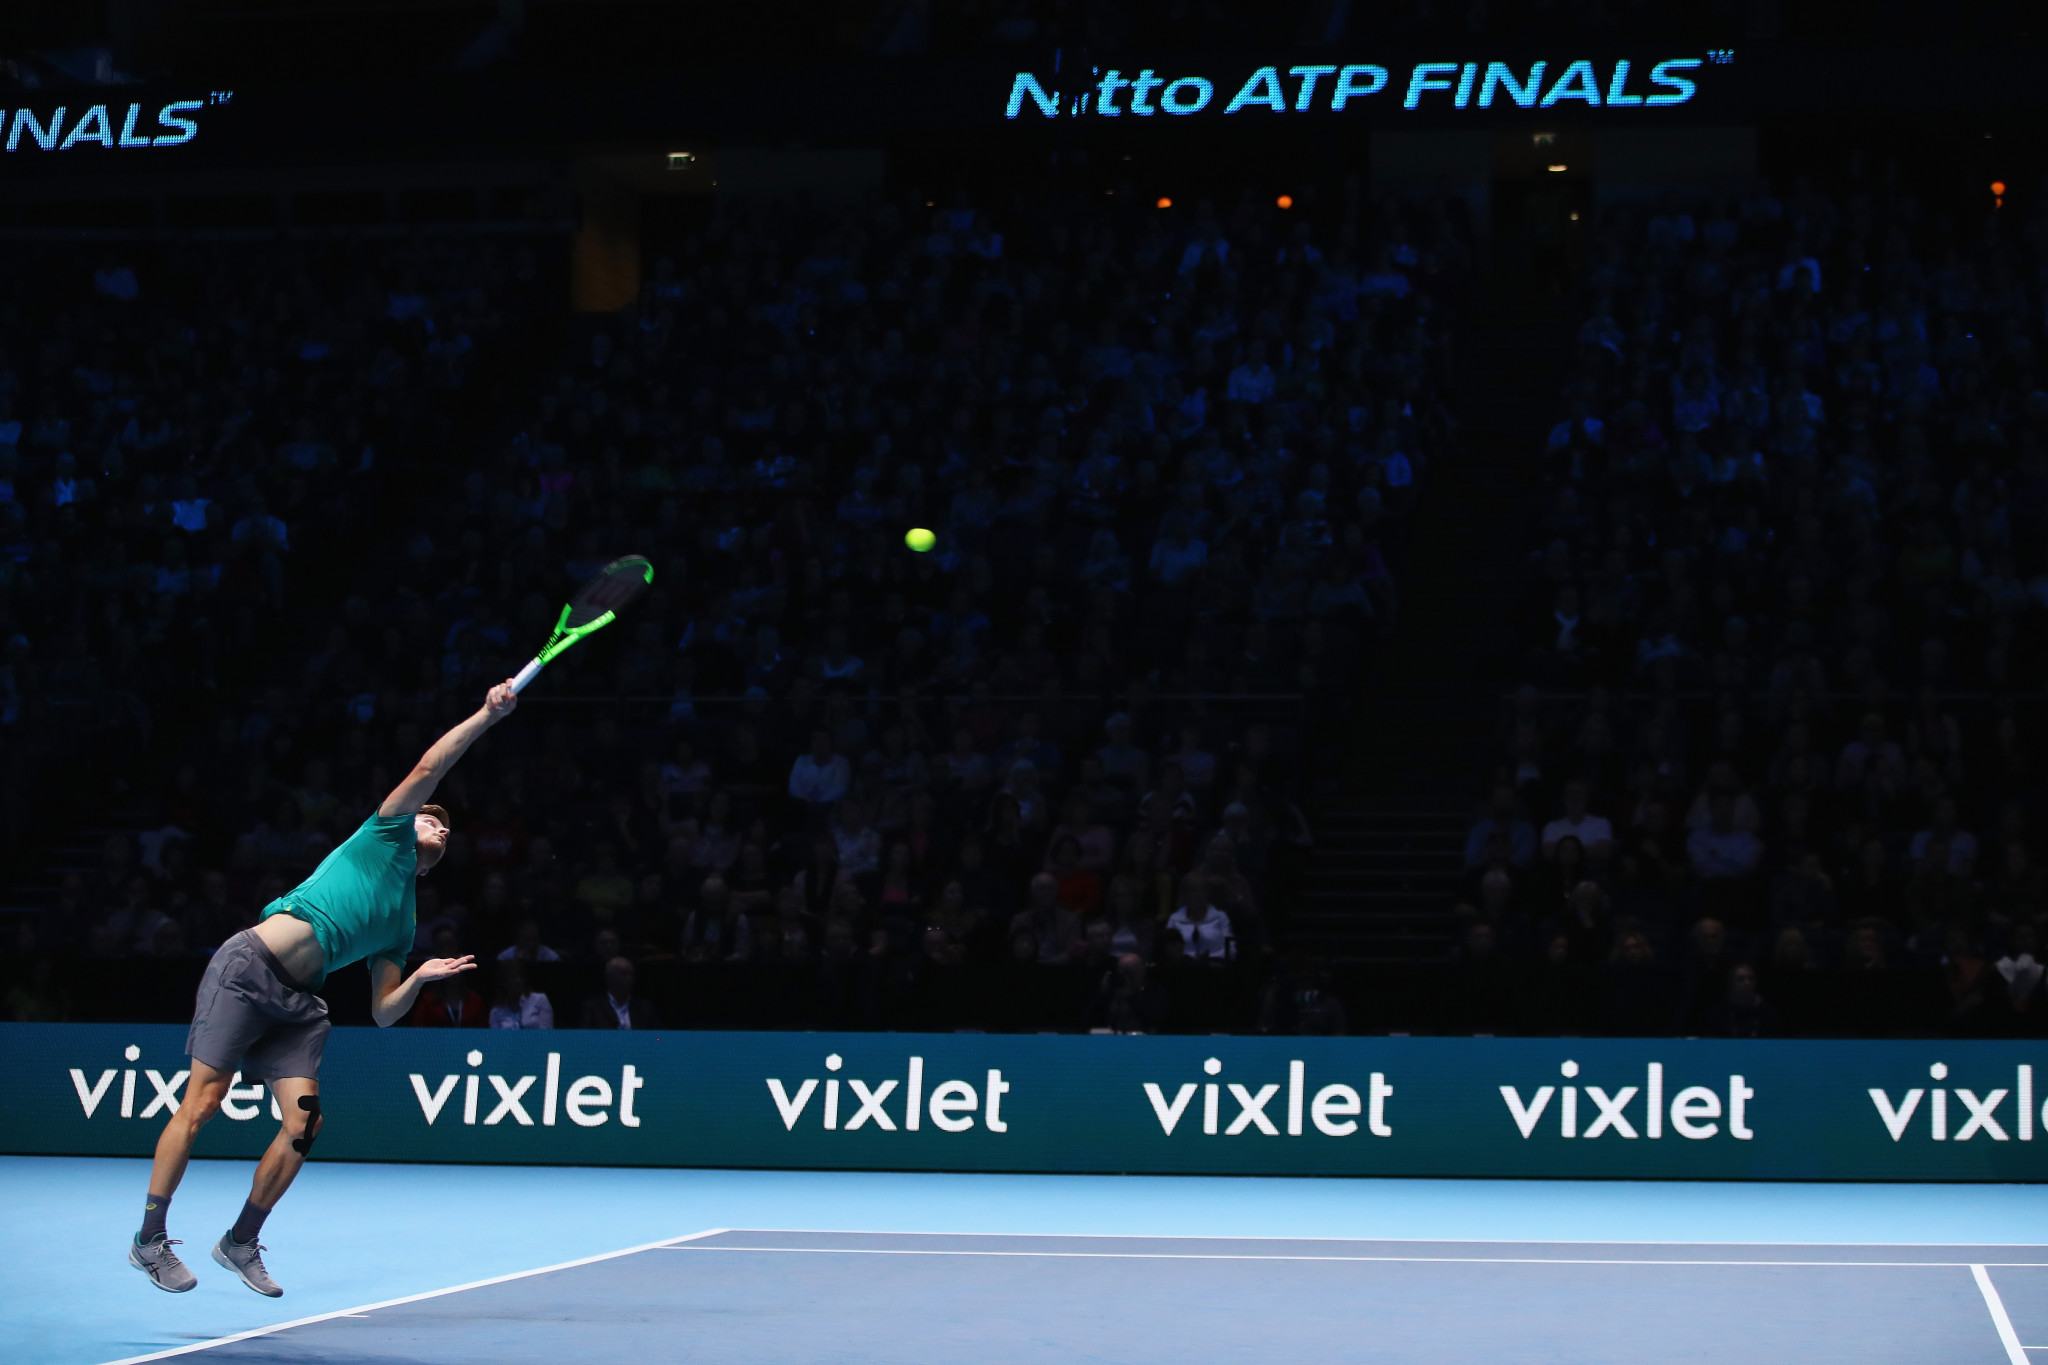 Goffin powers into last four at ATP World Tour Finals with straight sets win over Thiem